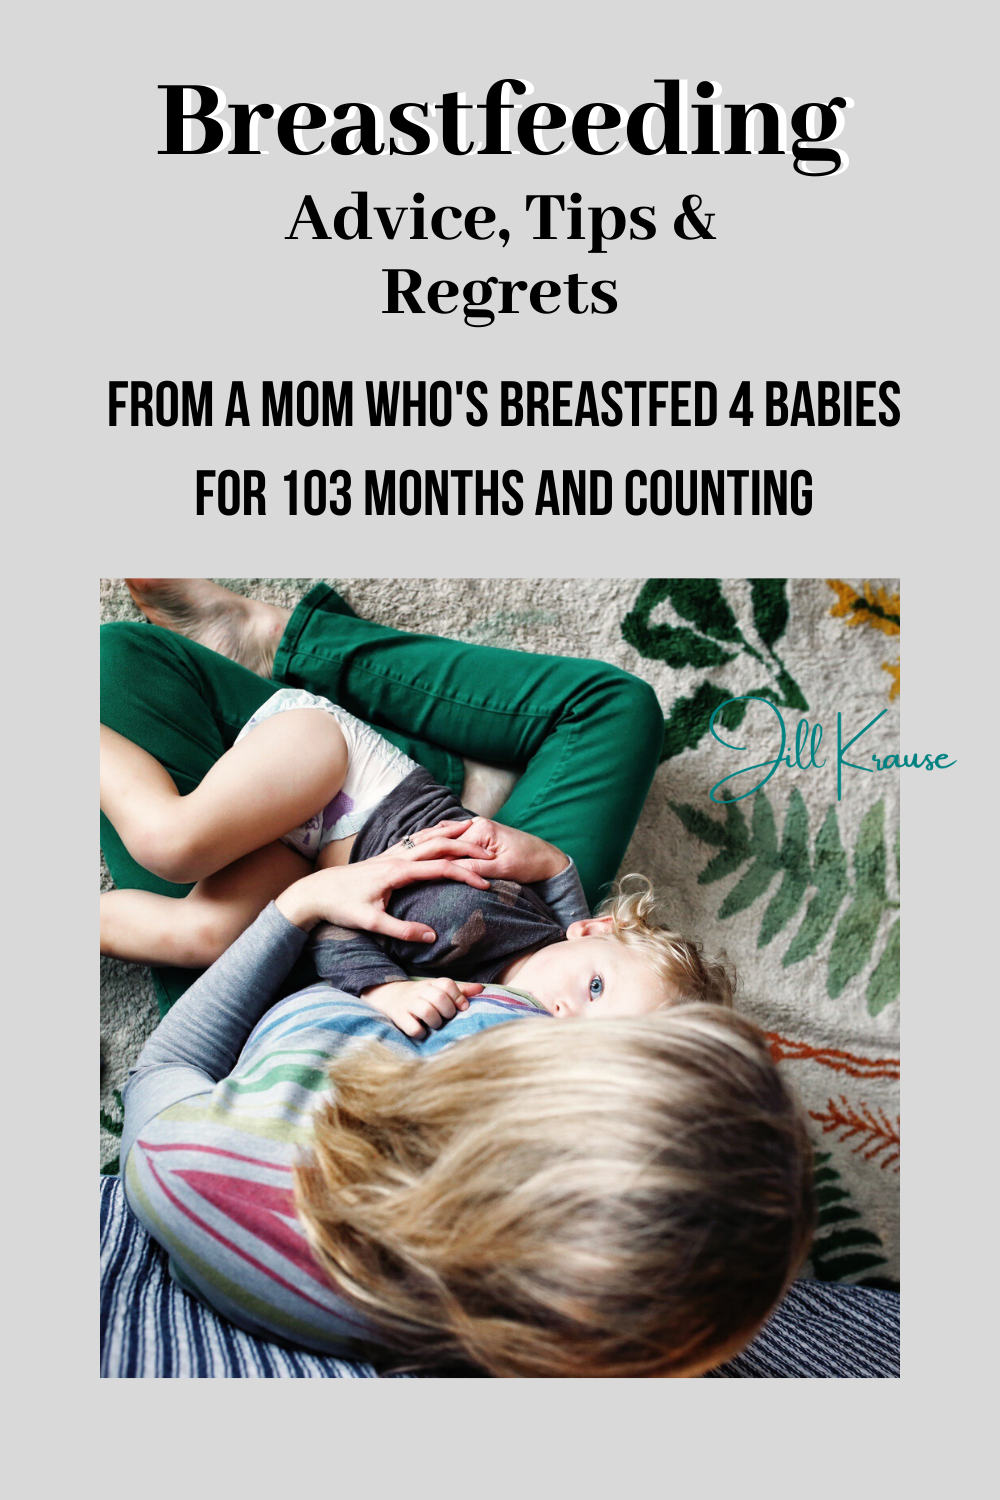 Breastfeeding advice & regrets | JillKrause.com